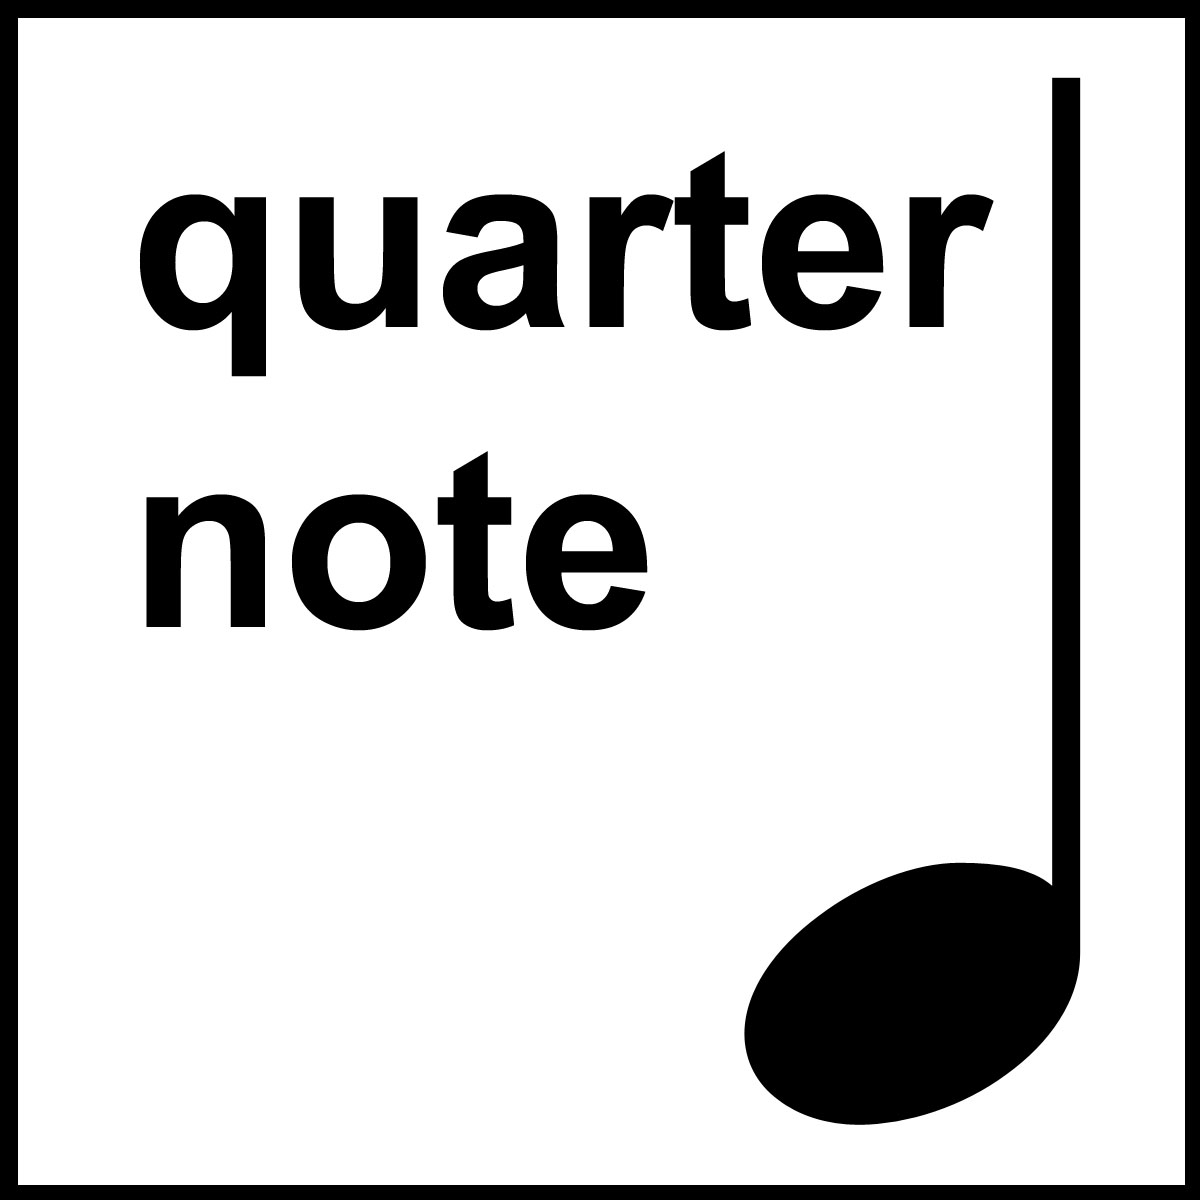 Notes clipart math note. Durations and music httpwwwabcteachcomfreeqquarternotebw